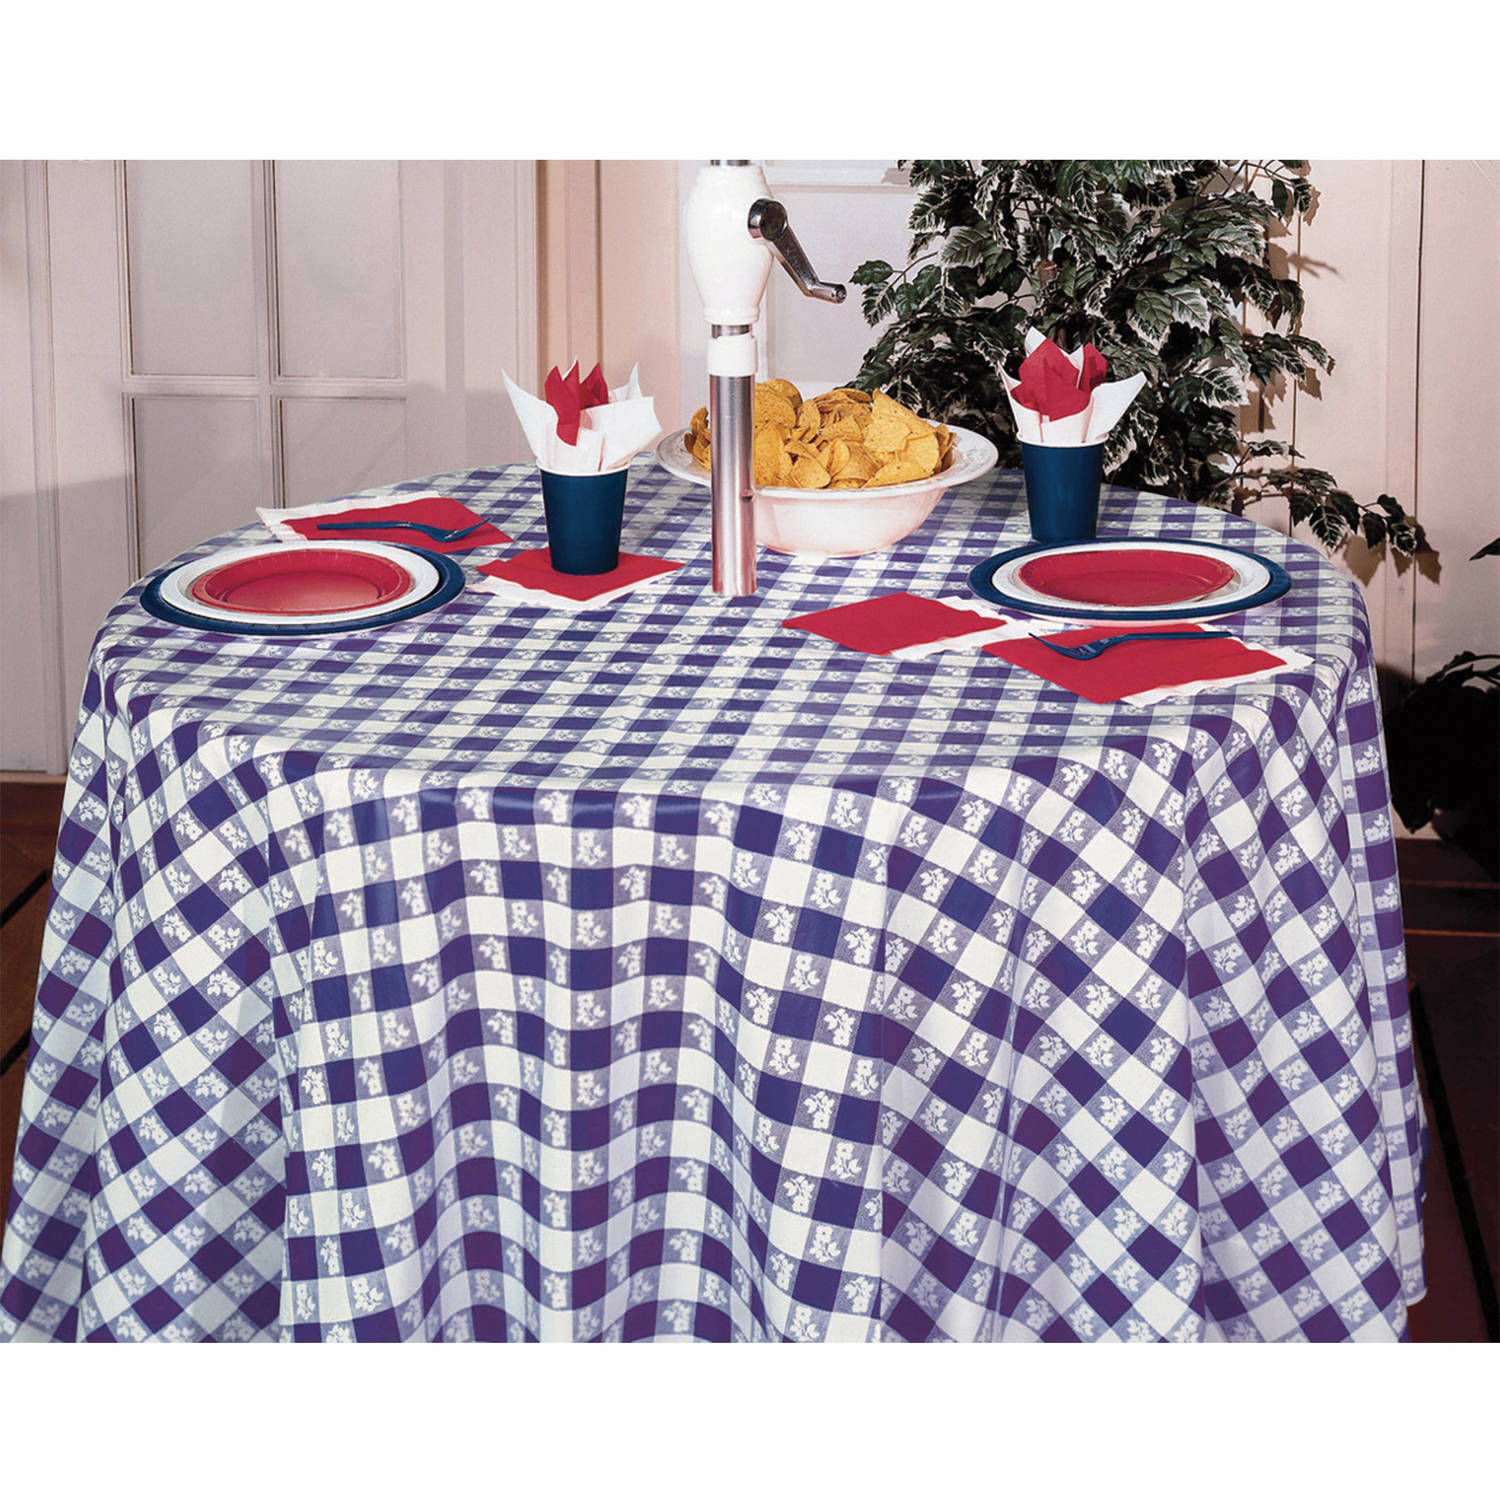 Blue Gingham Round Plastic Tablecloth